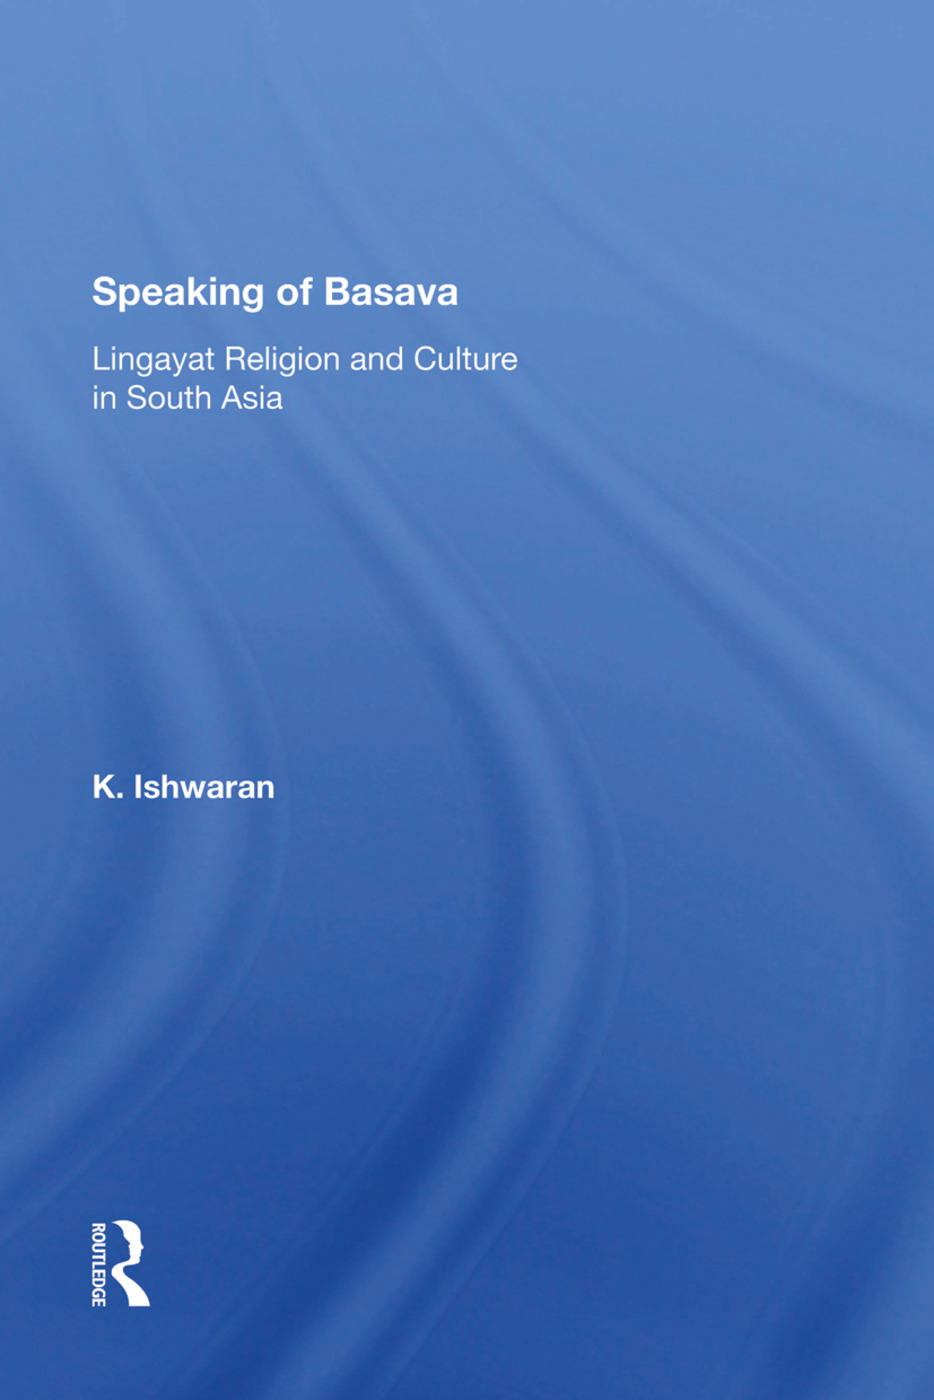 Speaking Of Basava: Lingayat Religion And Culture In South Asia, 1st Edition (Hardback) book cover